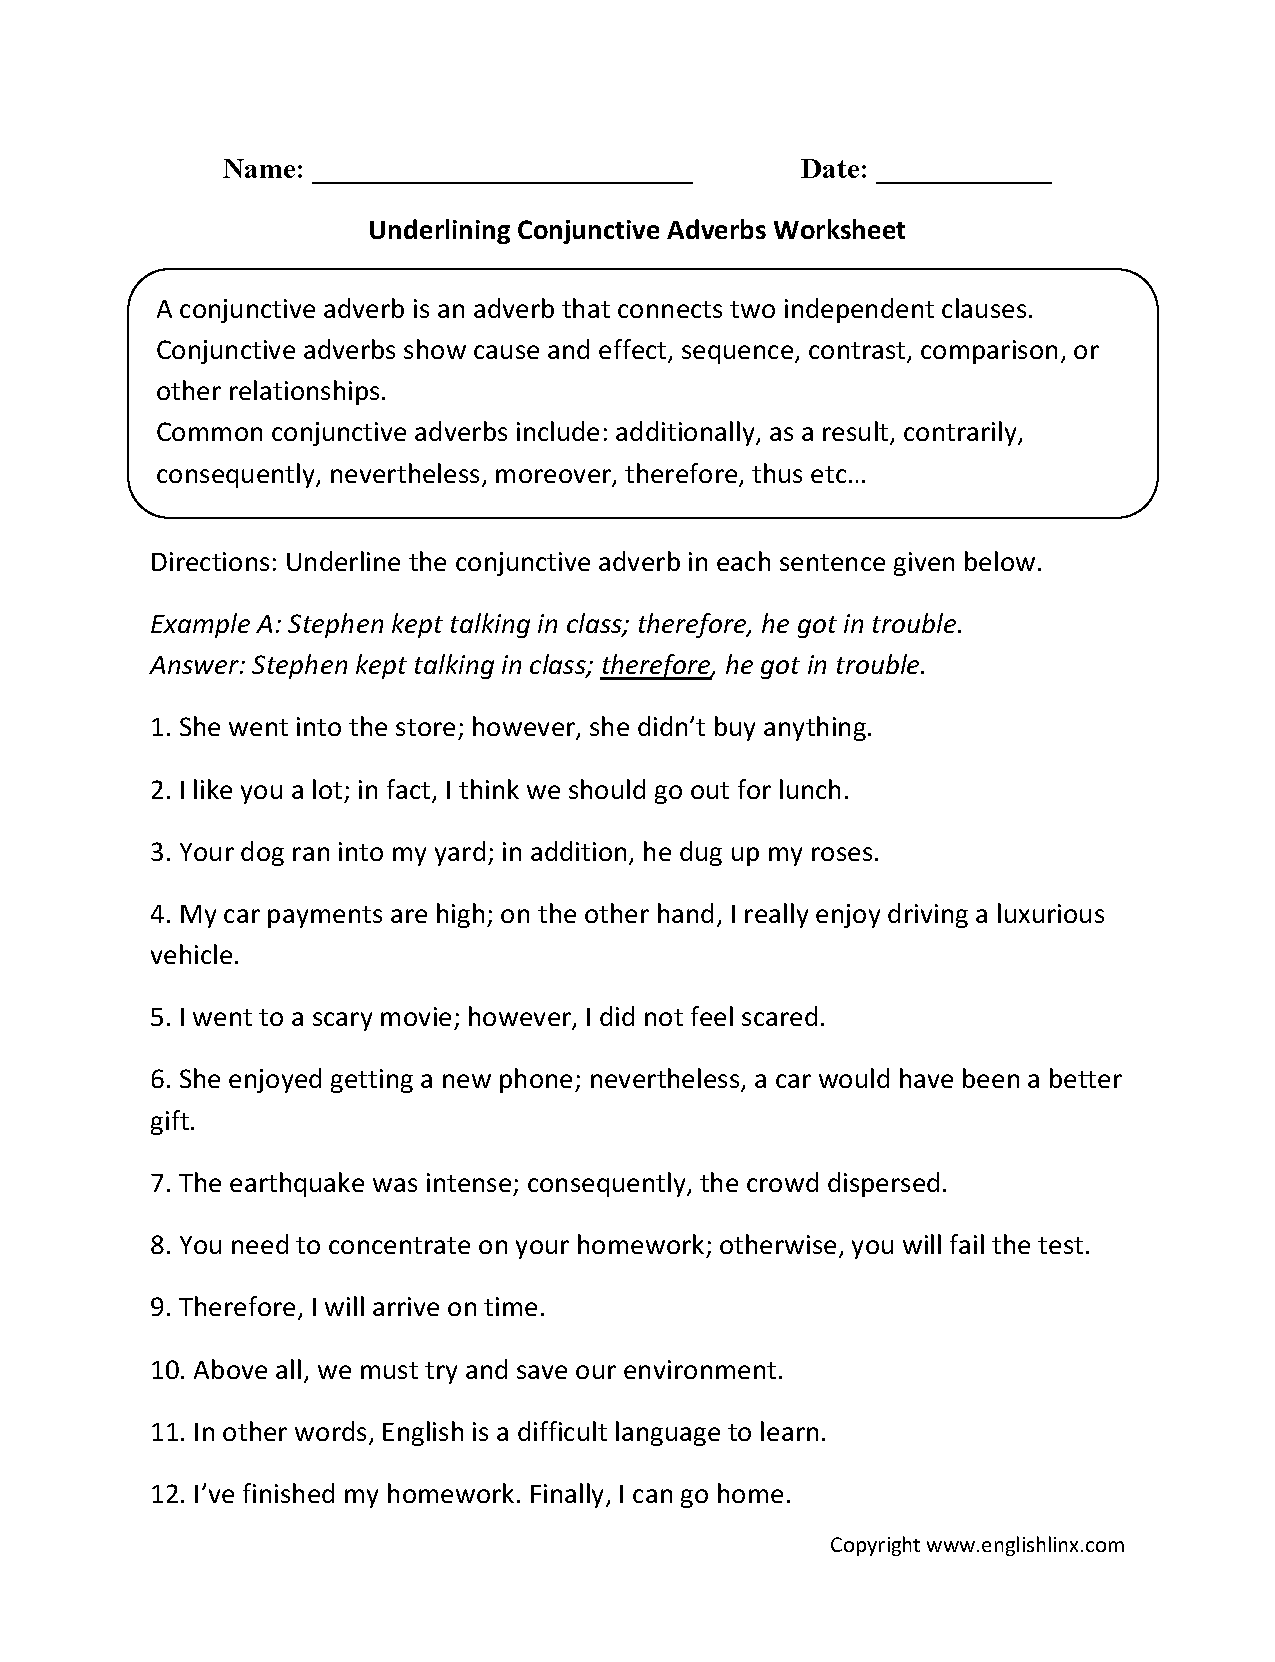 Weirdmailus  Unique Englishlinxcom  Conjunctions Worksheets With Entrancing Worksheet With Archaic Fractions For Kindergarten Worksheets Also Line Segment Worksheet In Addition Addition Worksheets For Kindergarten With Pictures And Interval Notation Worksheets As Well As Hundred Chart Worksheet Additionally Superkids Worksheet From Englishlinxcom With Weirdmailus  Entrancing Englishlinxcom  Conjunctions Worksheets With Archaic Worksheet And Unique Fractions For Kindergarten Worksheets Also Line Segment Worksheet In Addition Addition Worksheets For Kindergarten With Pictures From Englishlinxcom